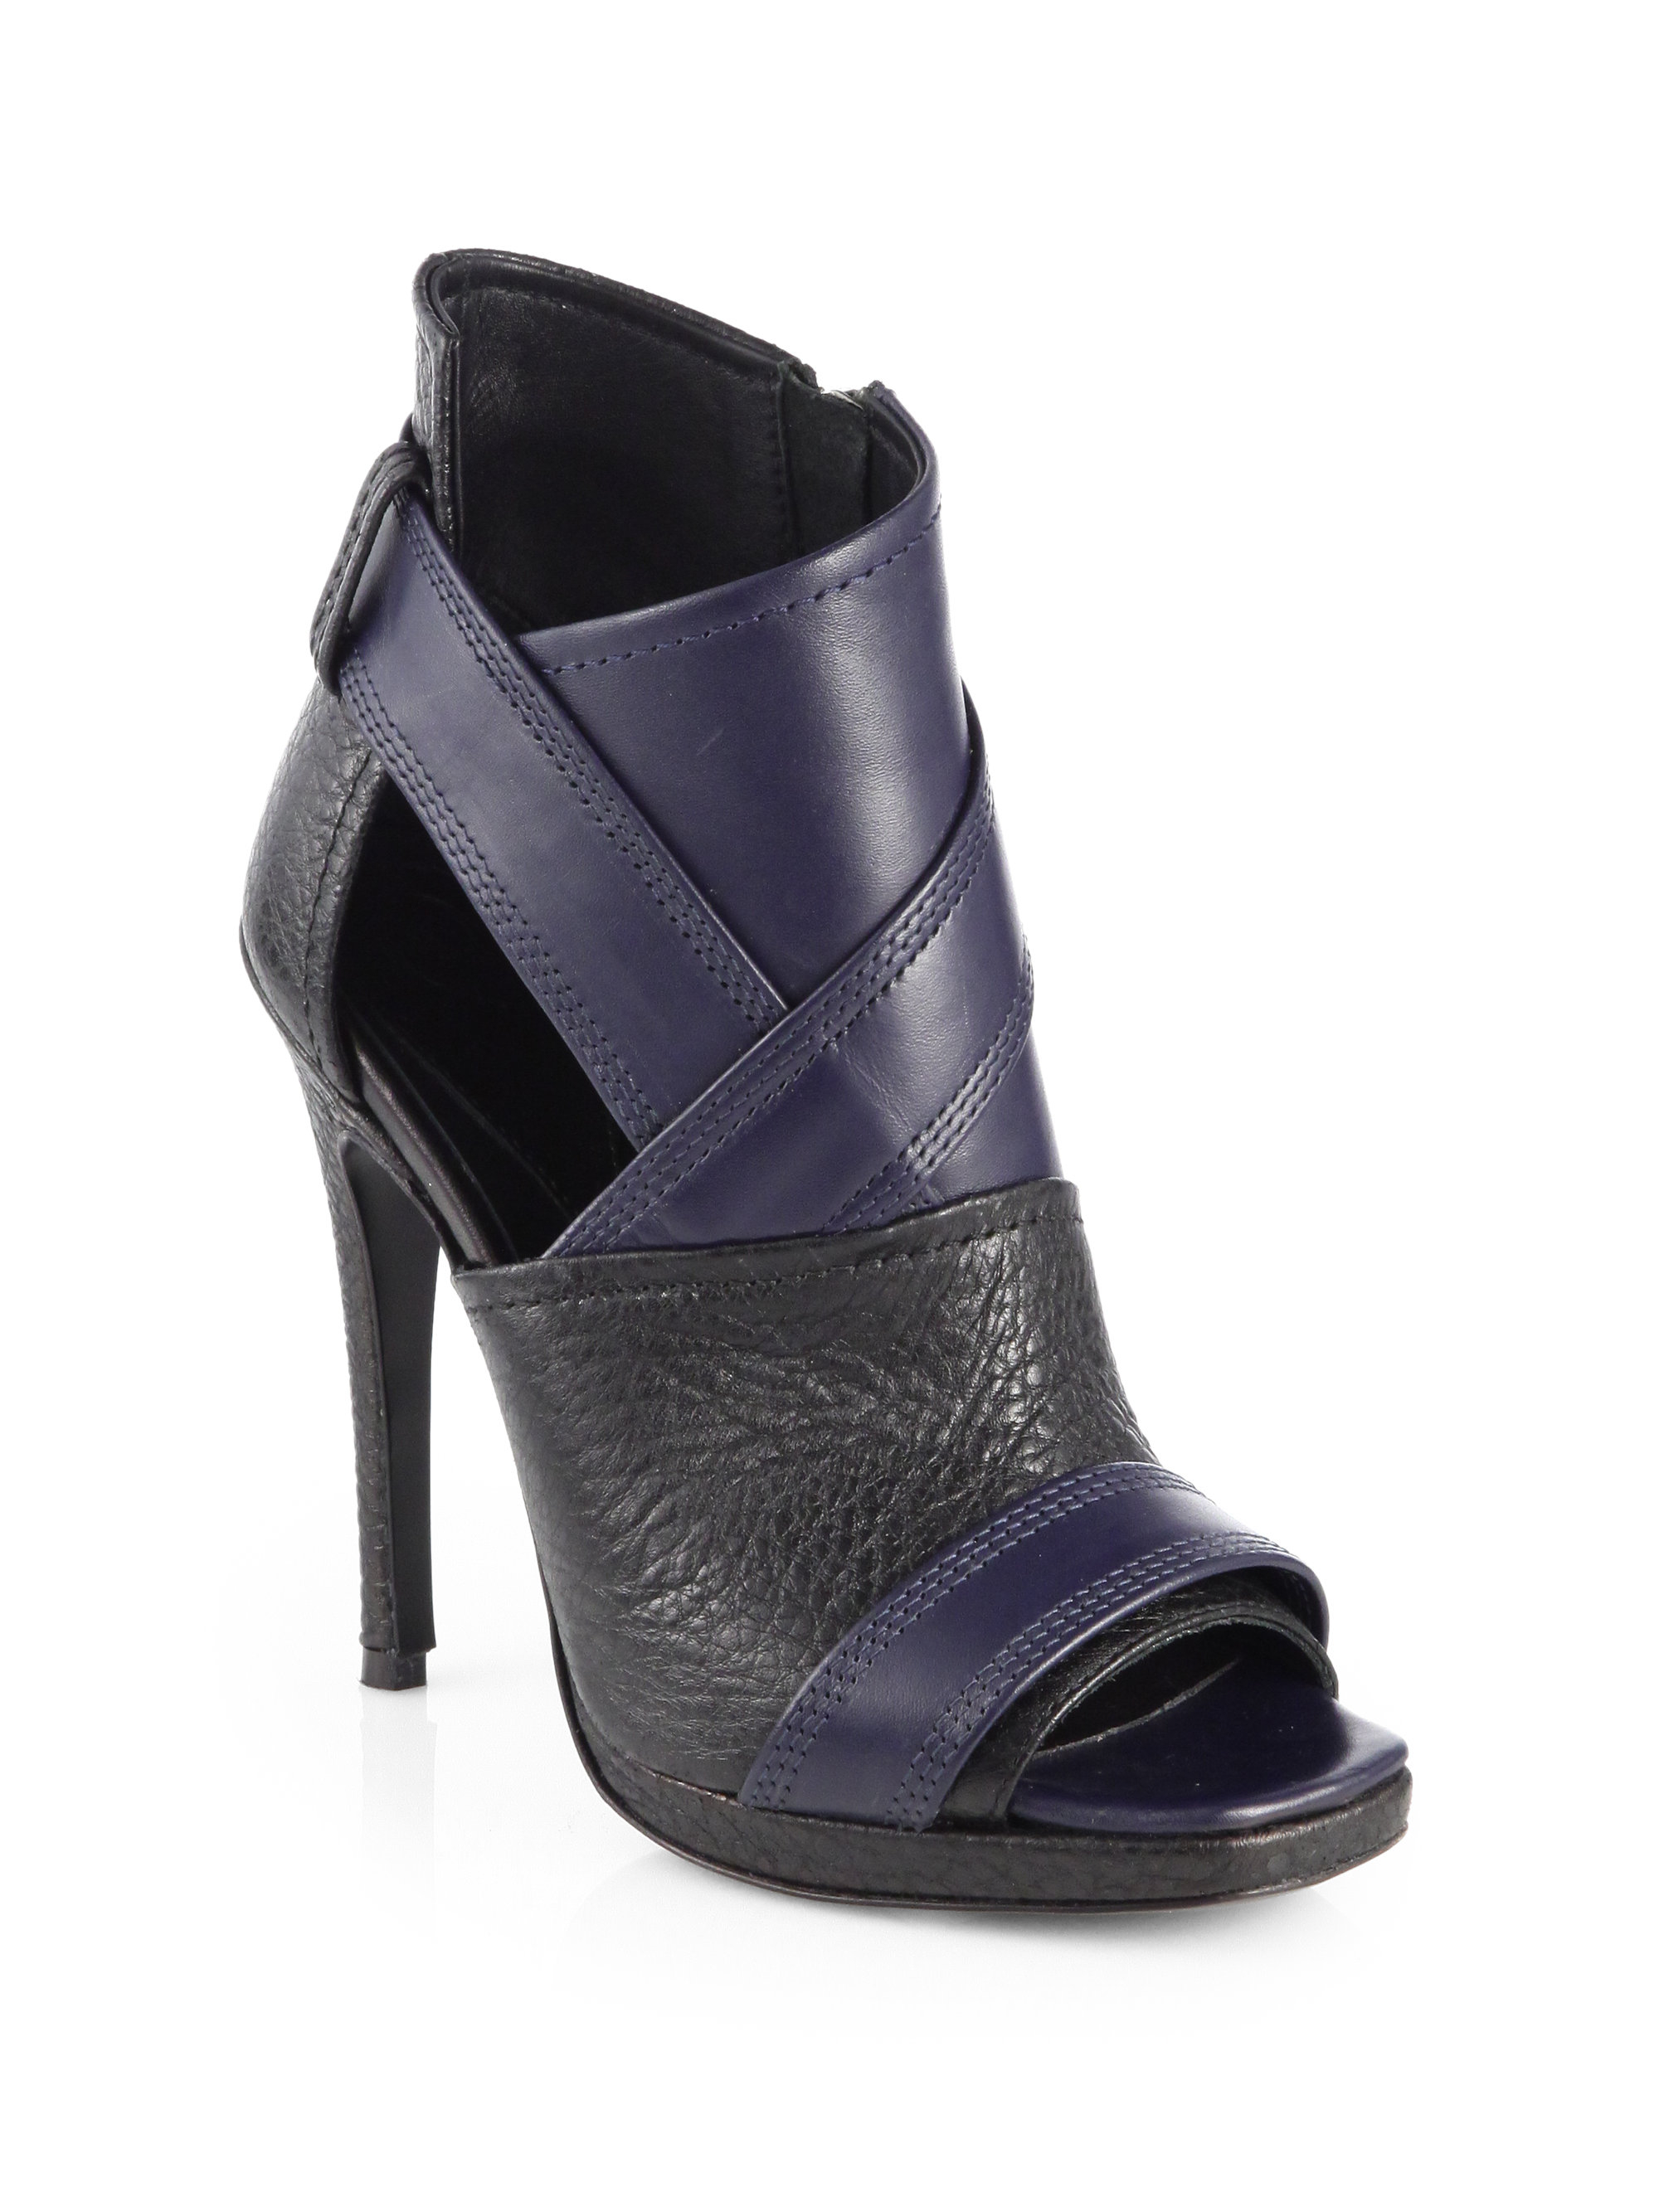 mcq lara bicolor leather open toe ankle boots in black lyst